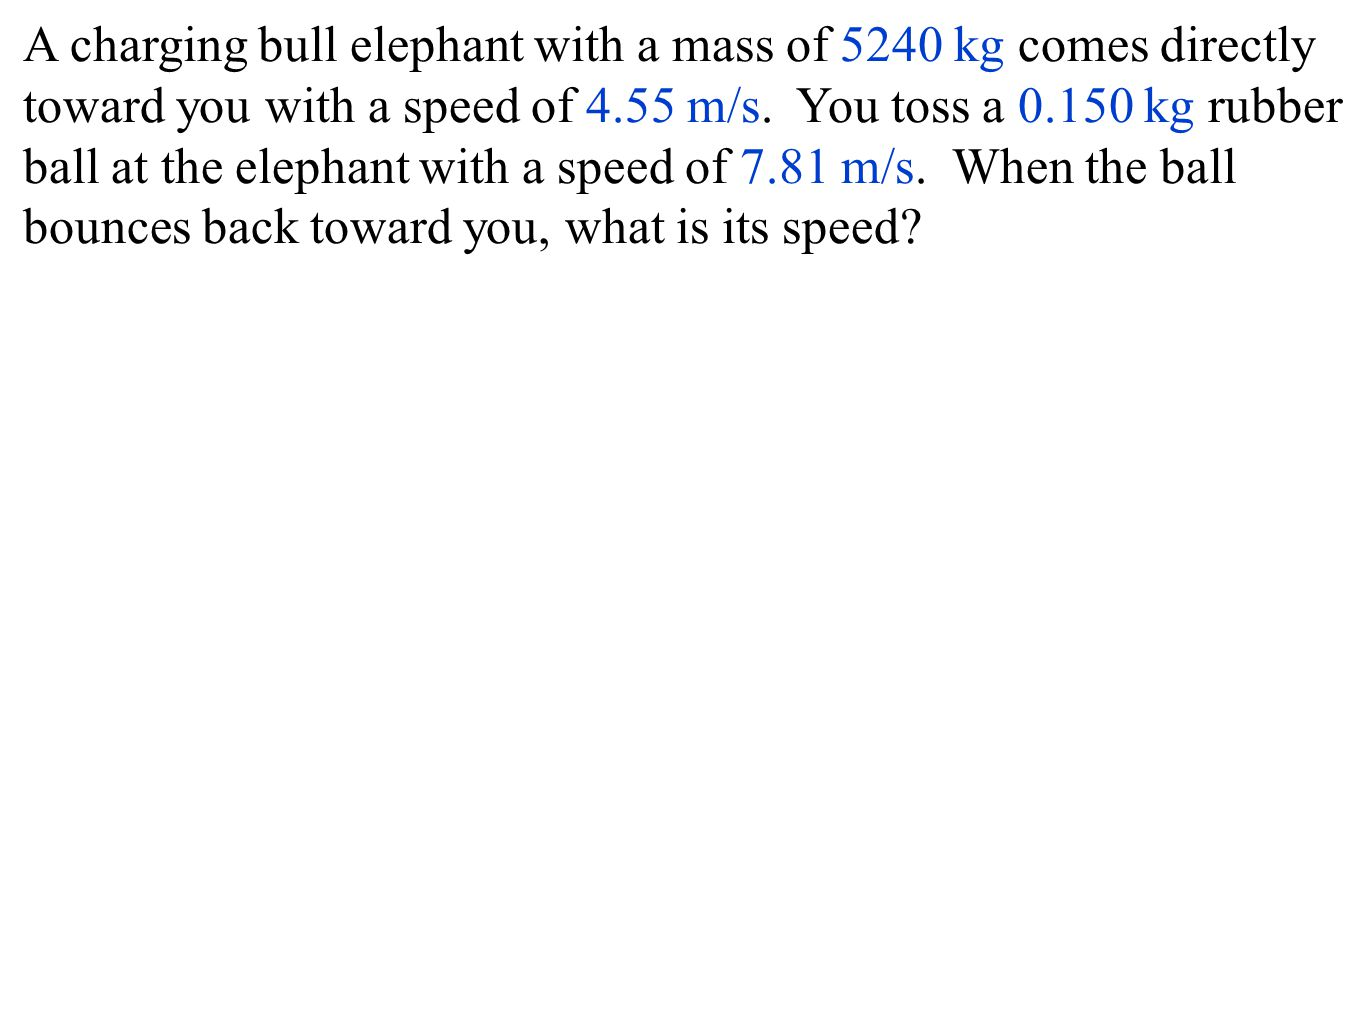 A charging bull elephant with a mass of 5240 kg comes directly toward you with a speed of 4.55 m/s.